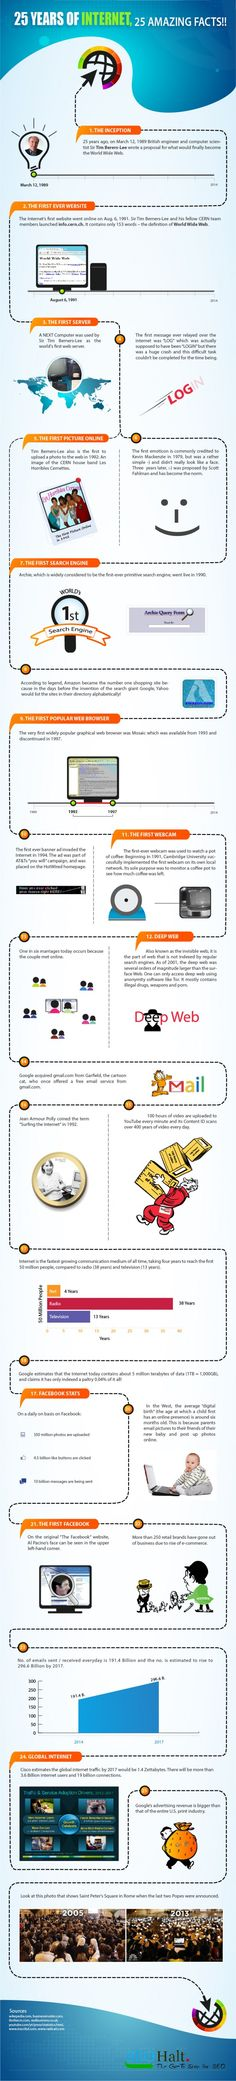 Some Amazing Facts About The Internet - SiteProNews